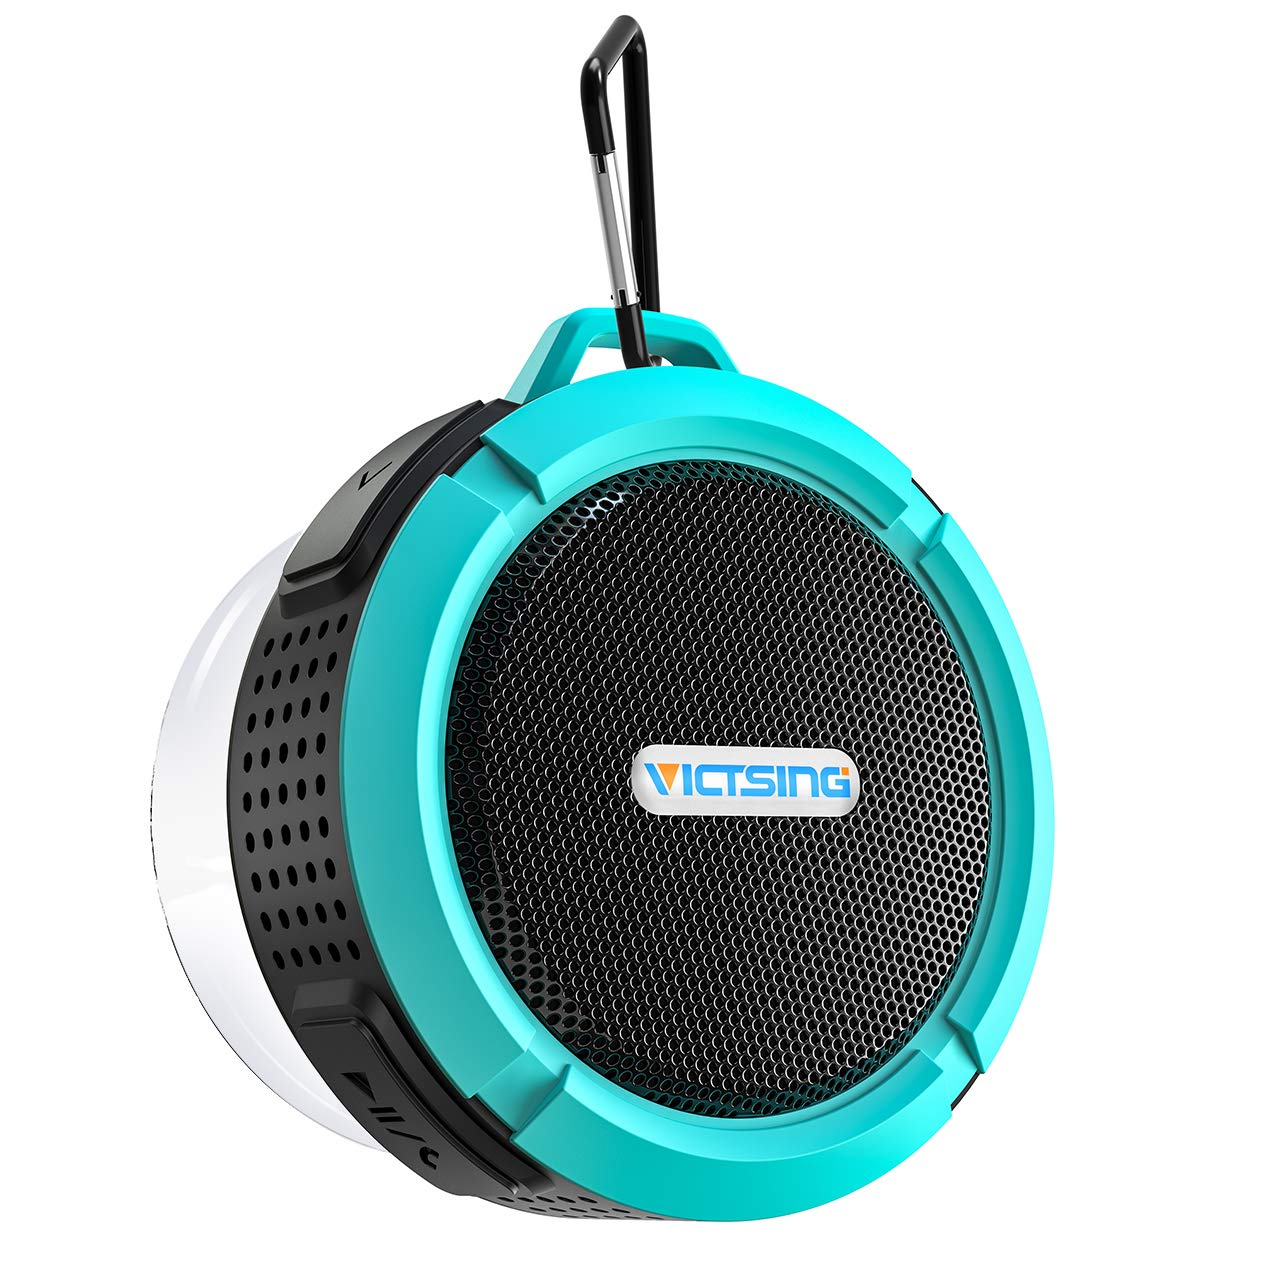 VicTsing SoundHot C6 Portable Bluetooth Speaker, Waterproof Bluetooth Speaker with 6H Playtime, Loud HD Sound, Shower Speaker with Suction Cup & Sturdy Hook, Compatible with IOS, Android, PC, Pad by VicTsing